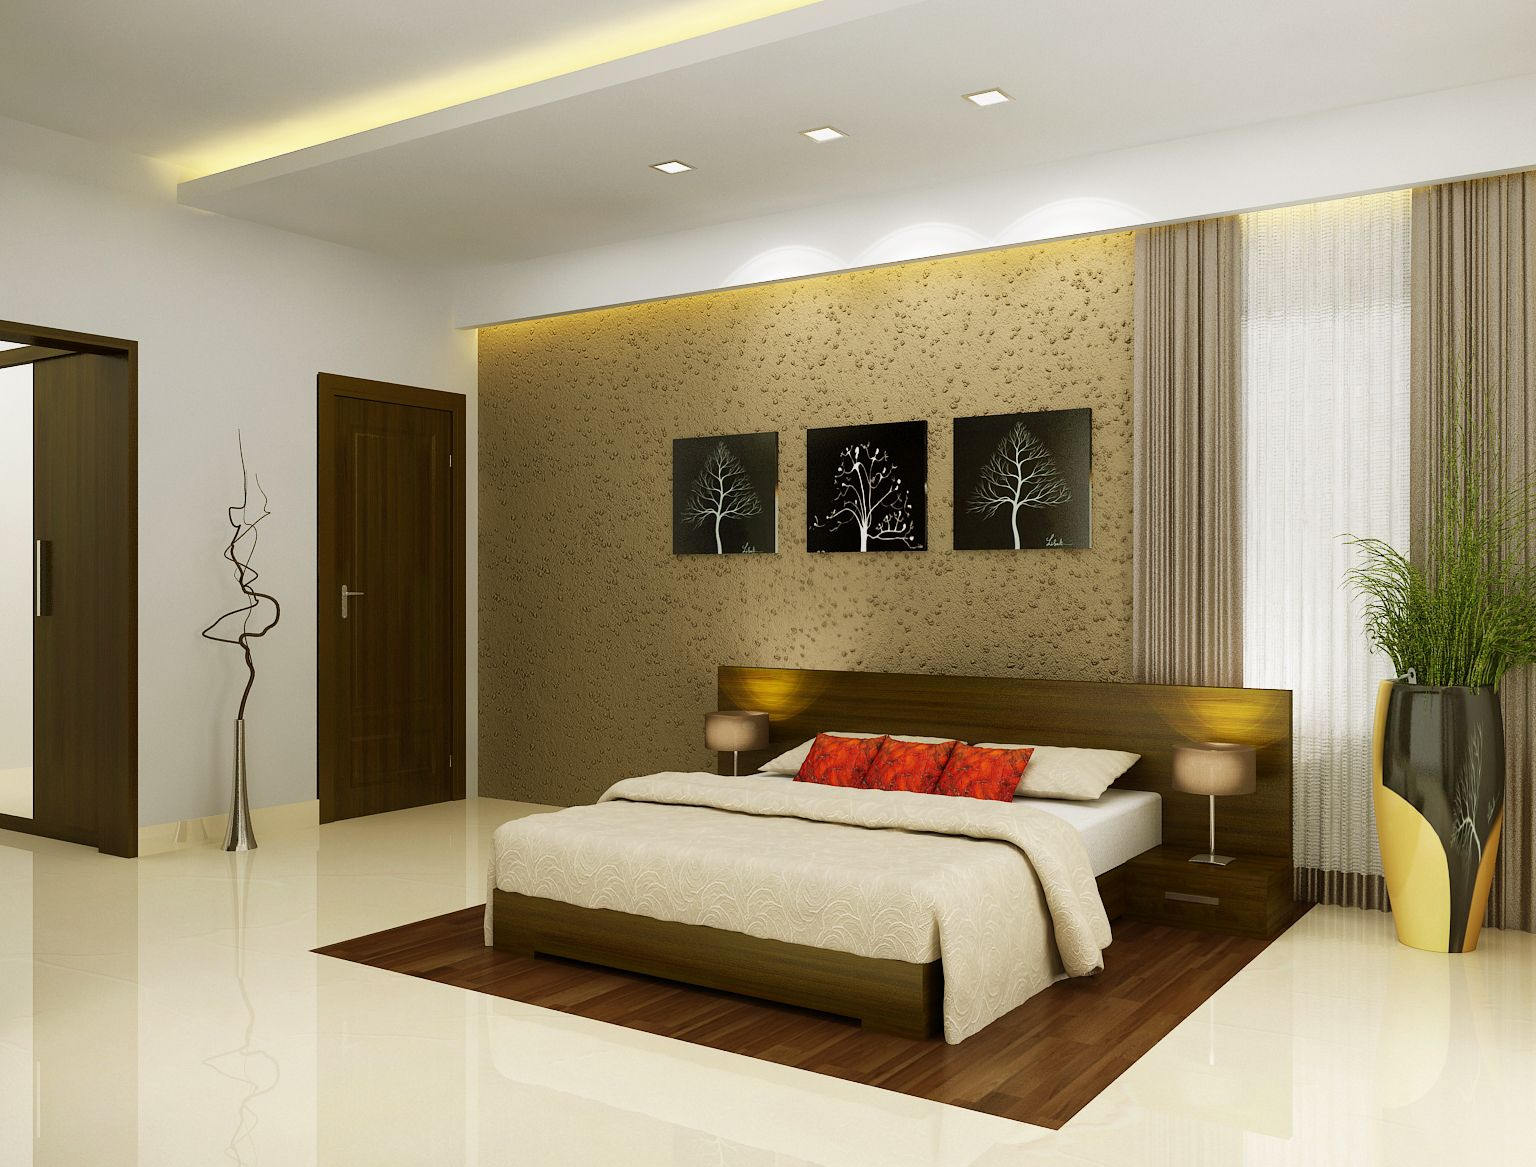 Bedroom design kerala style design ideas 2017 2018 for Bedroom design gallery